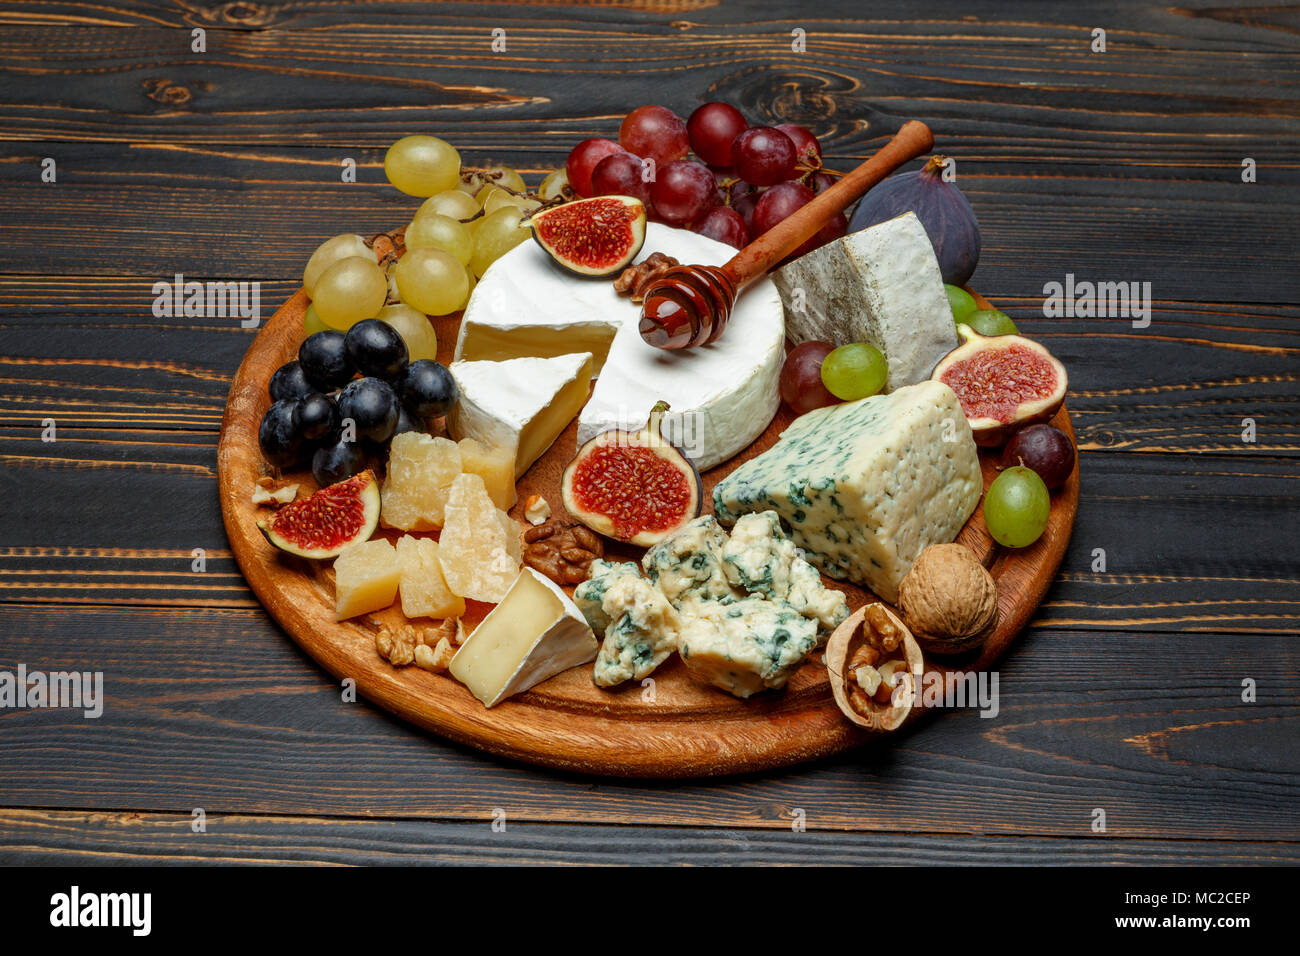 Brie cheese on a wooden Board with fresh figs and grapes - Stock Image